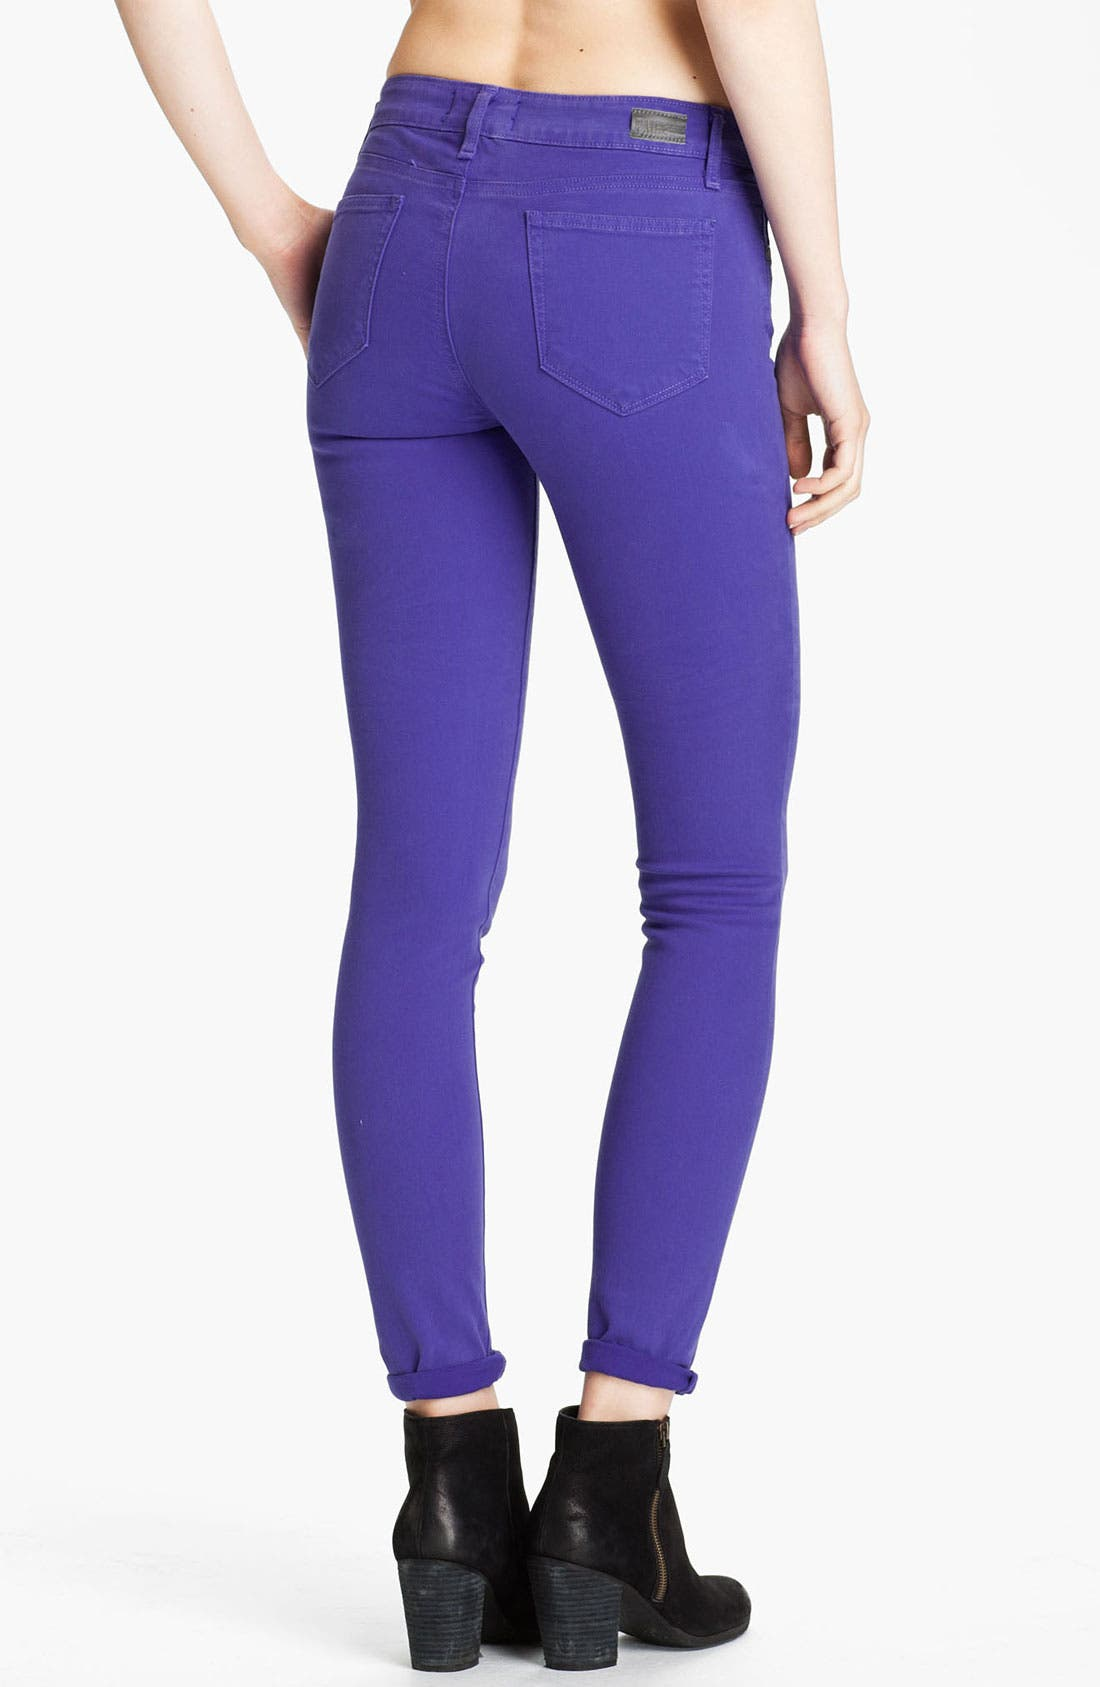 Alternate Image 2  - Paige Denim 'Verdugo' Skinny Stretch Denim Jeans (Violet Blue)